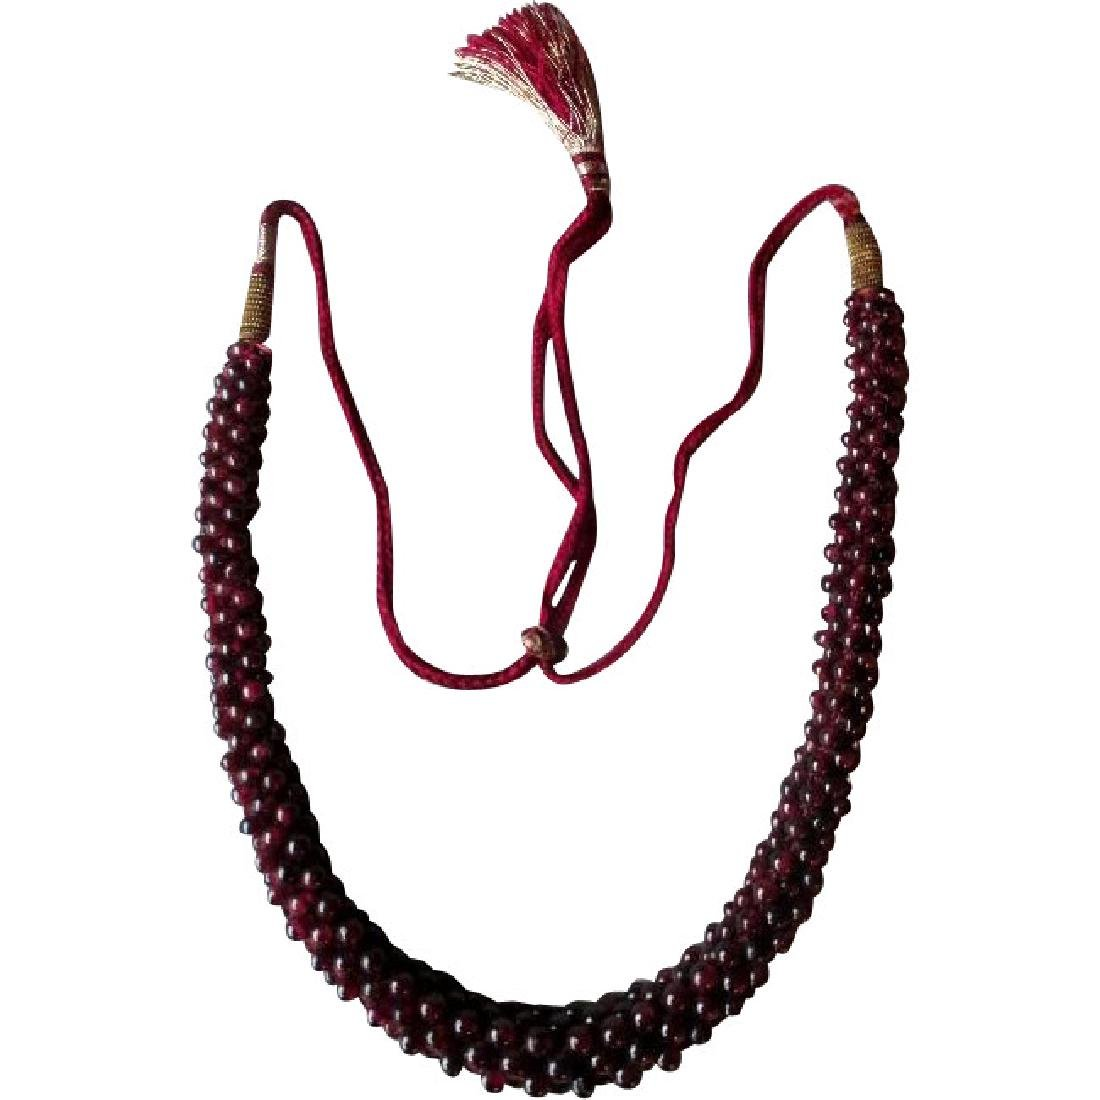 Beautiful Adjustable Garnet Rope Necklace